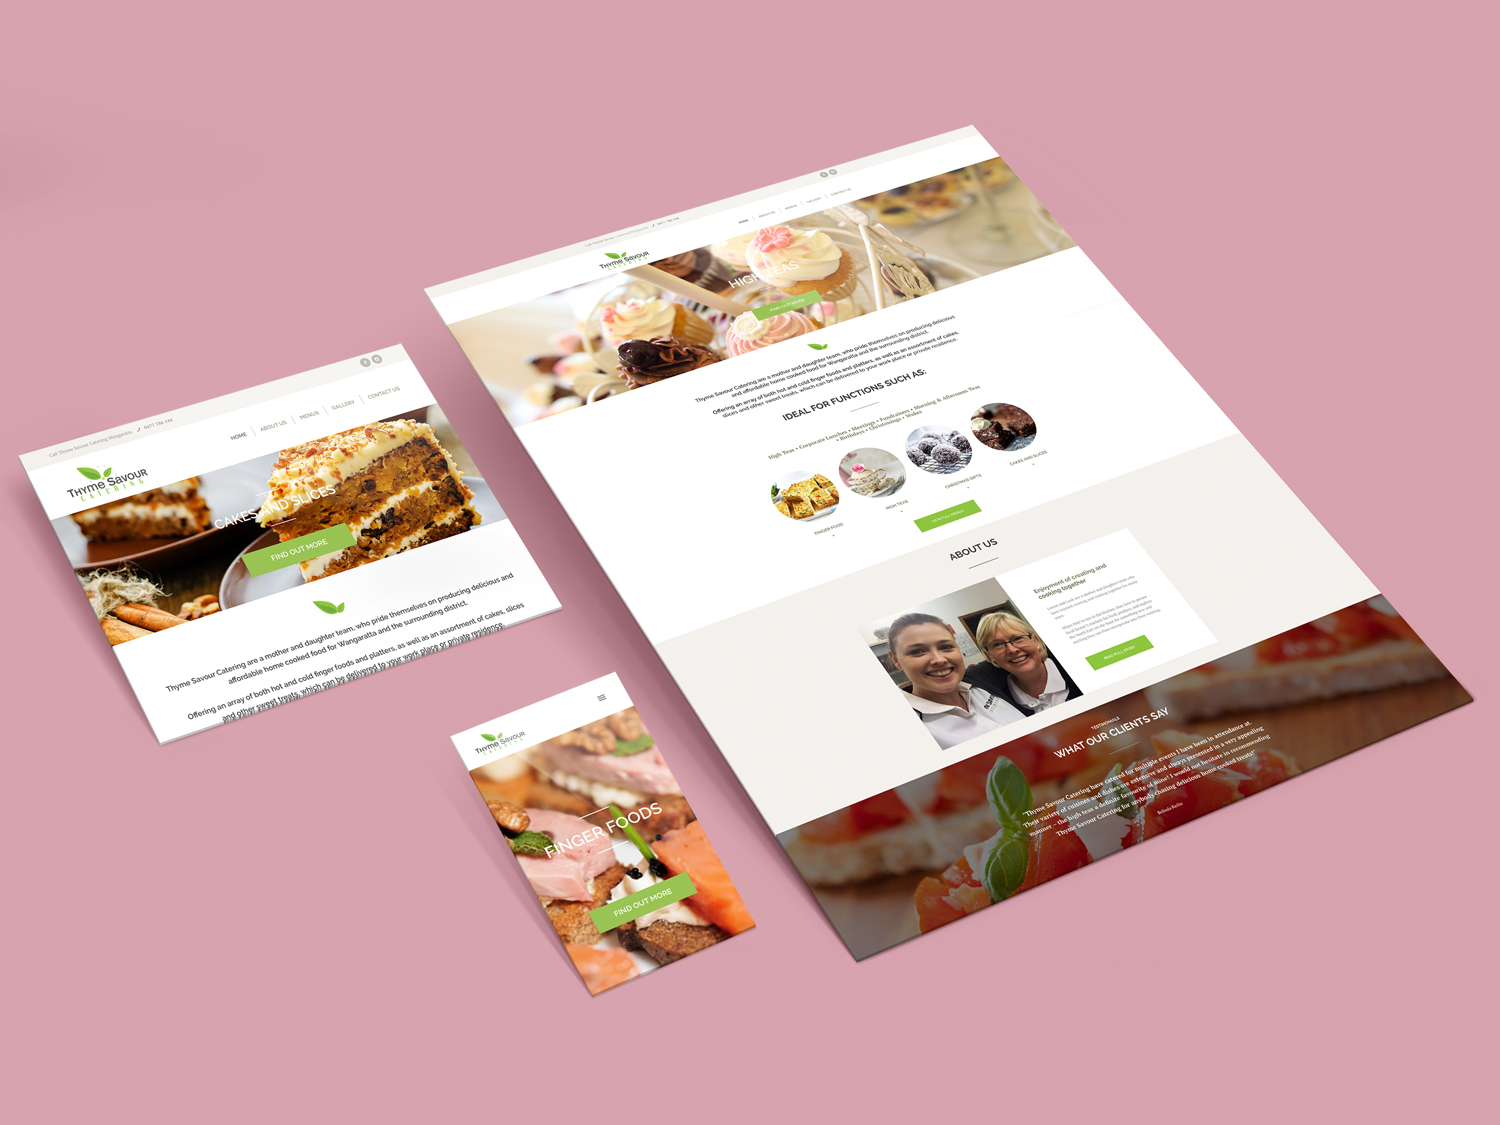 Purple Possum Design – Web Design Wangaratta – Thyme Savour catering